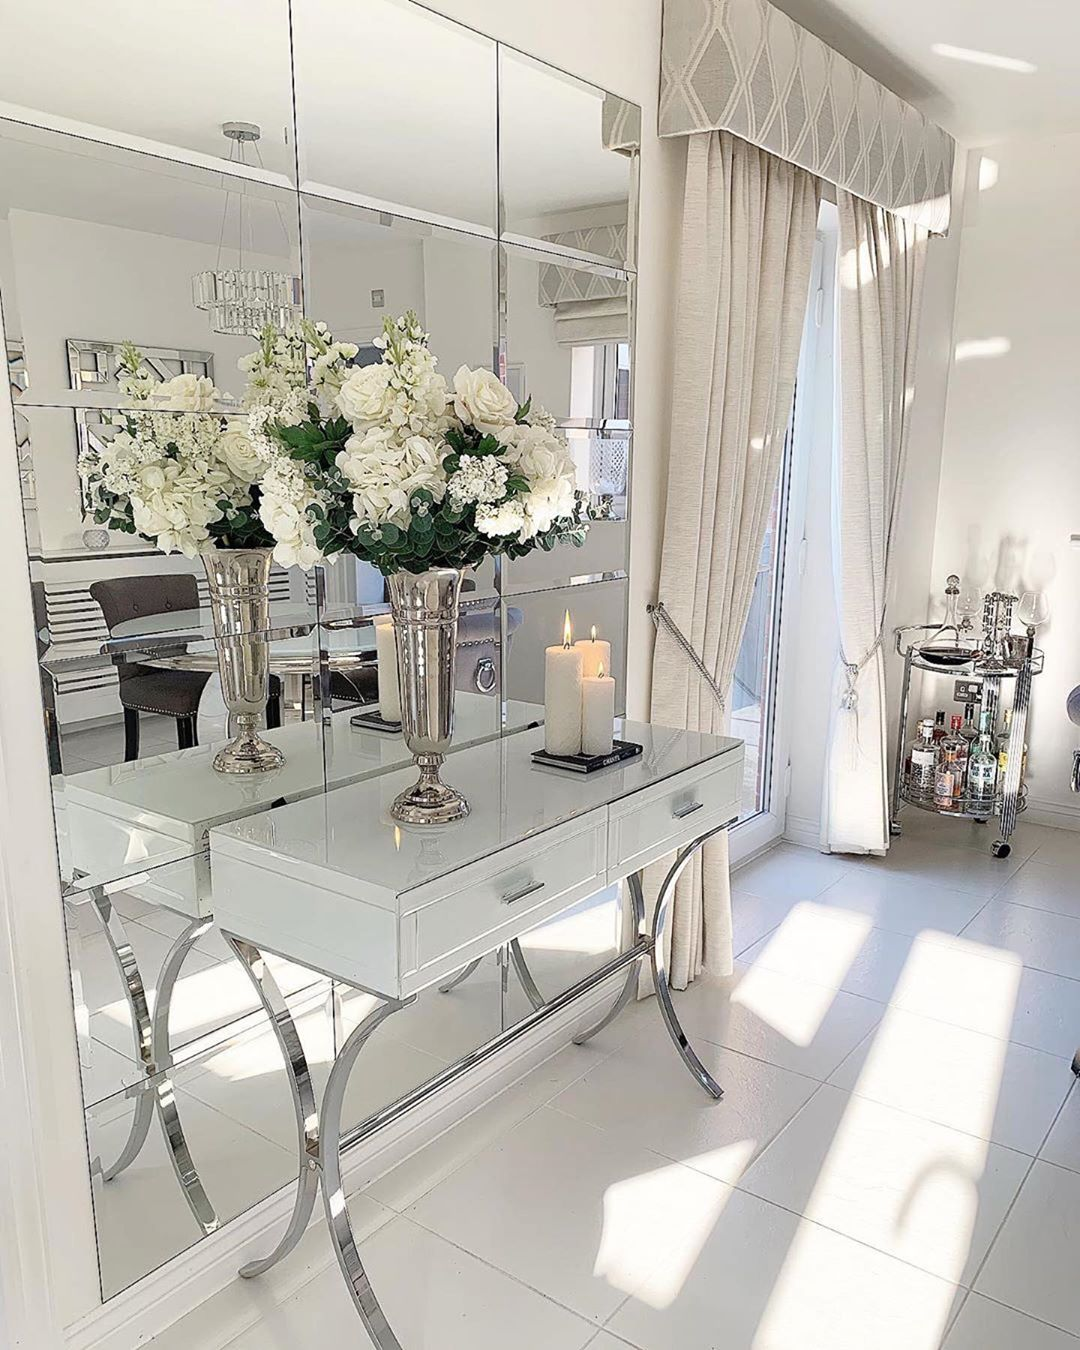 Continuing with today's mirror reflections. This gorgeous console!!! f